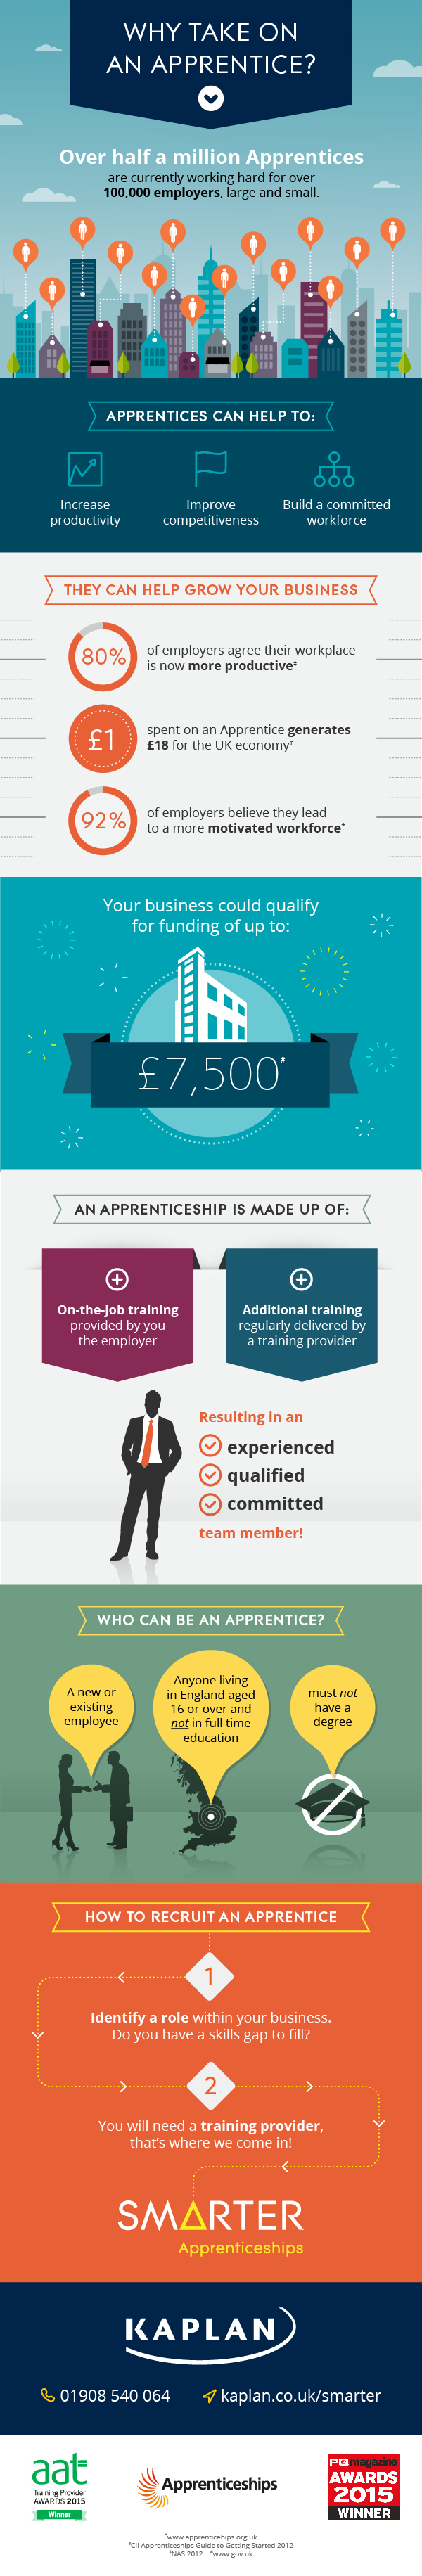 An infographic about the benefits of taking on an apprentice